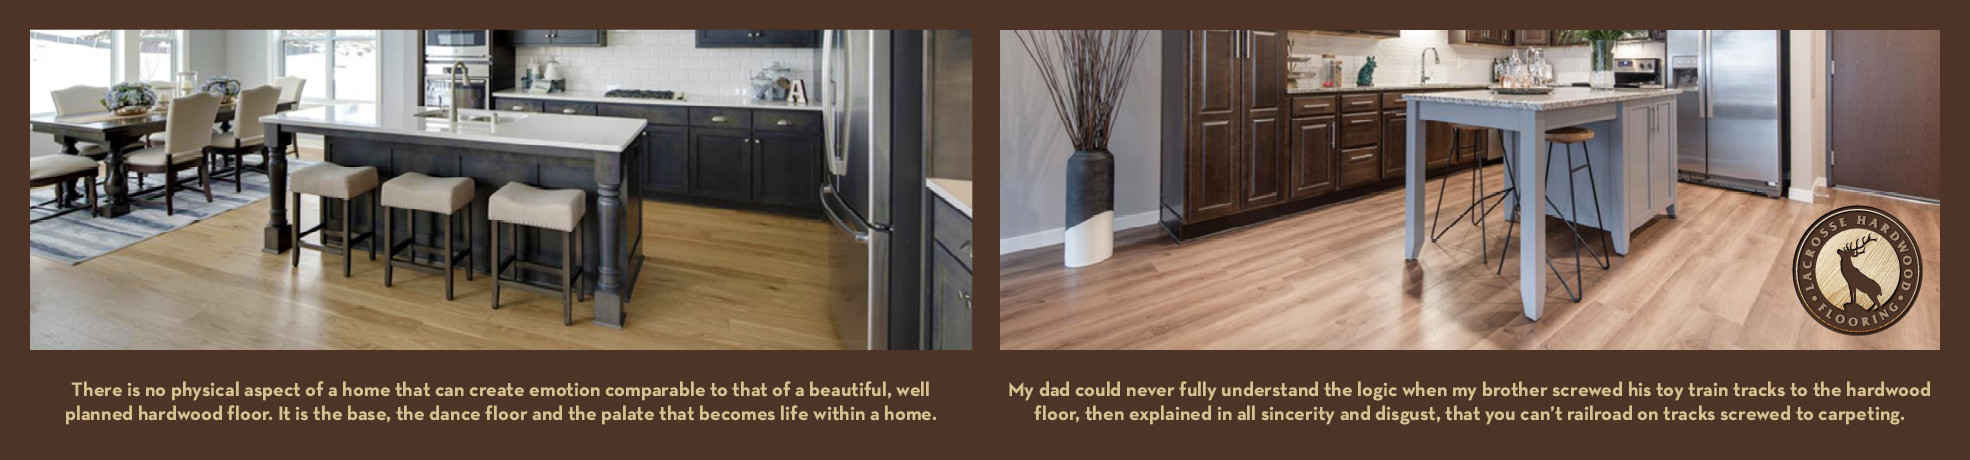 cost of hardwood floors vs carpet of lacrosse hardwood flooring walnut white oak red oak hickory with lhfsliderv24